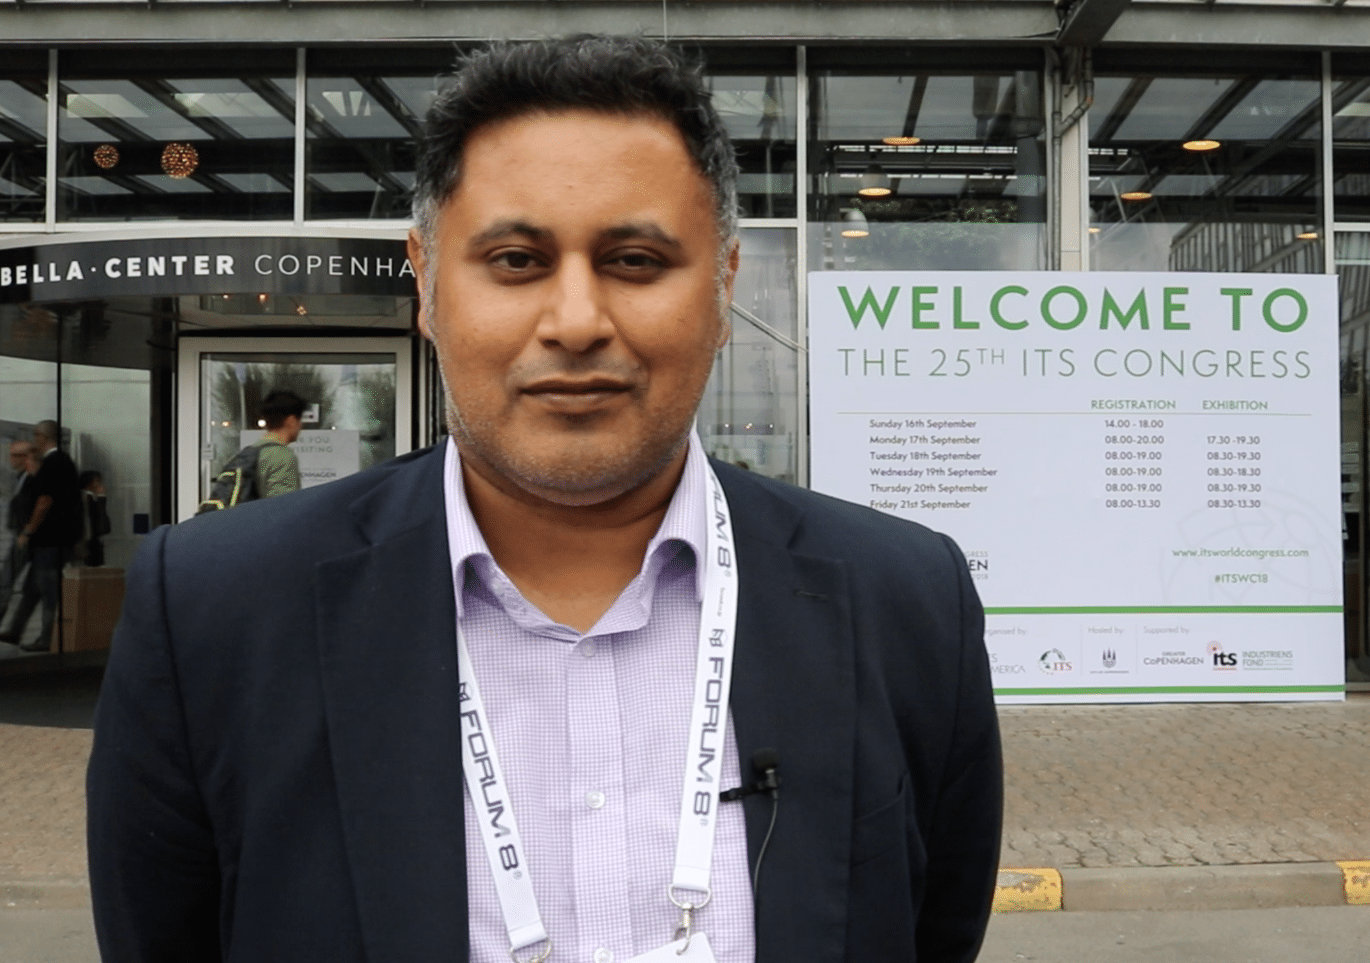 ICAV attends ITS World Congress 2018 in Copenhagen